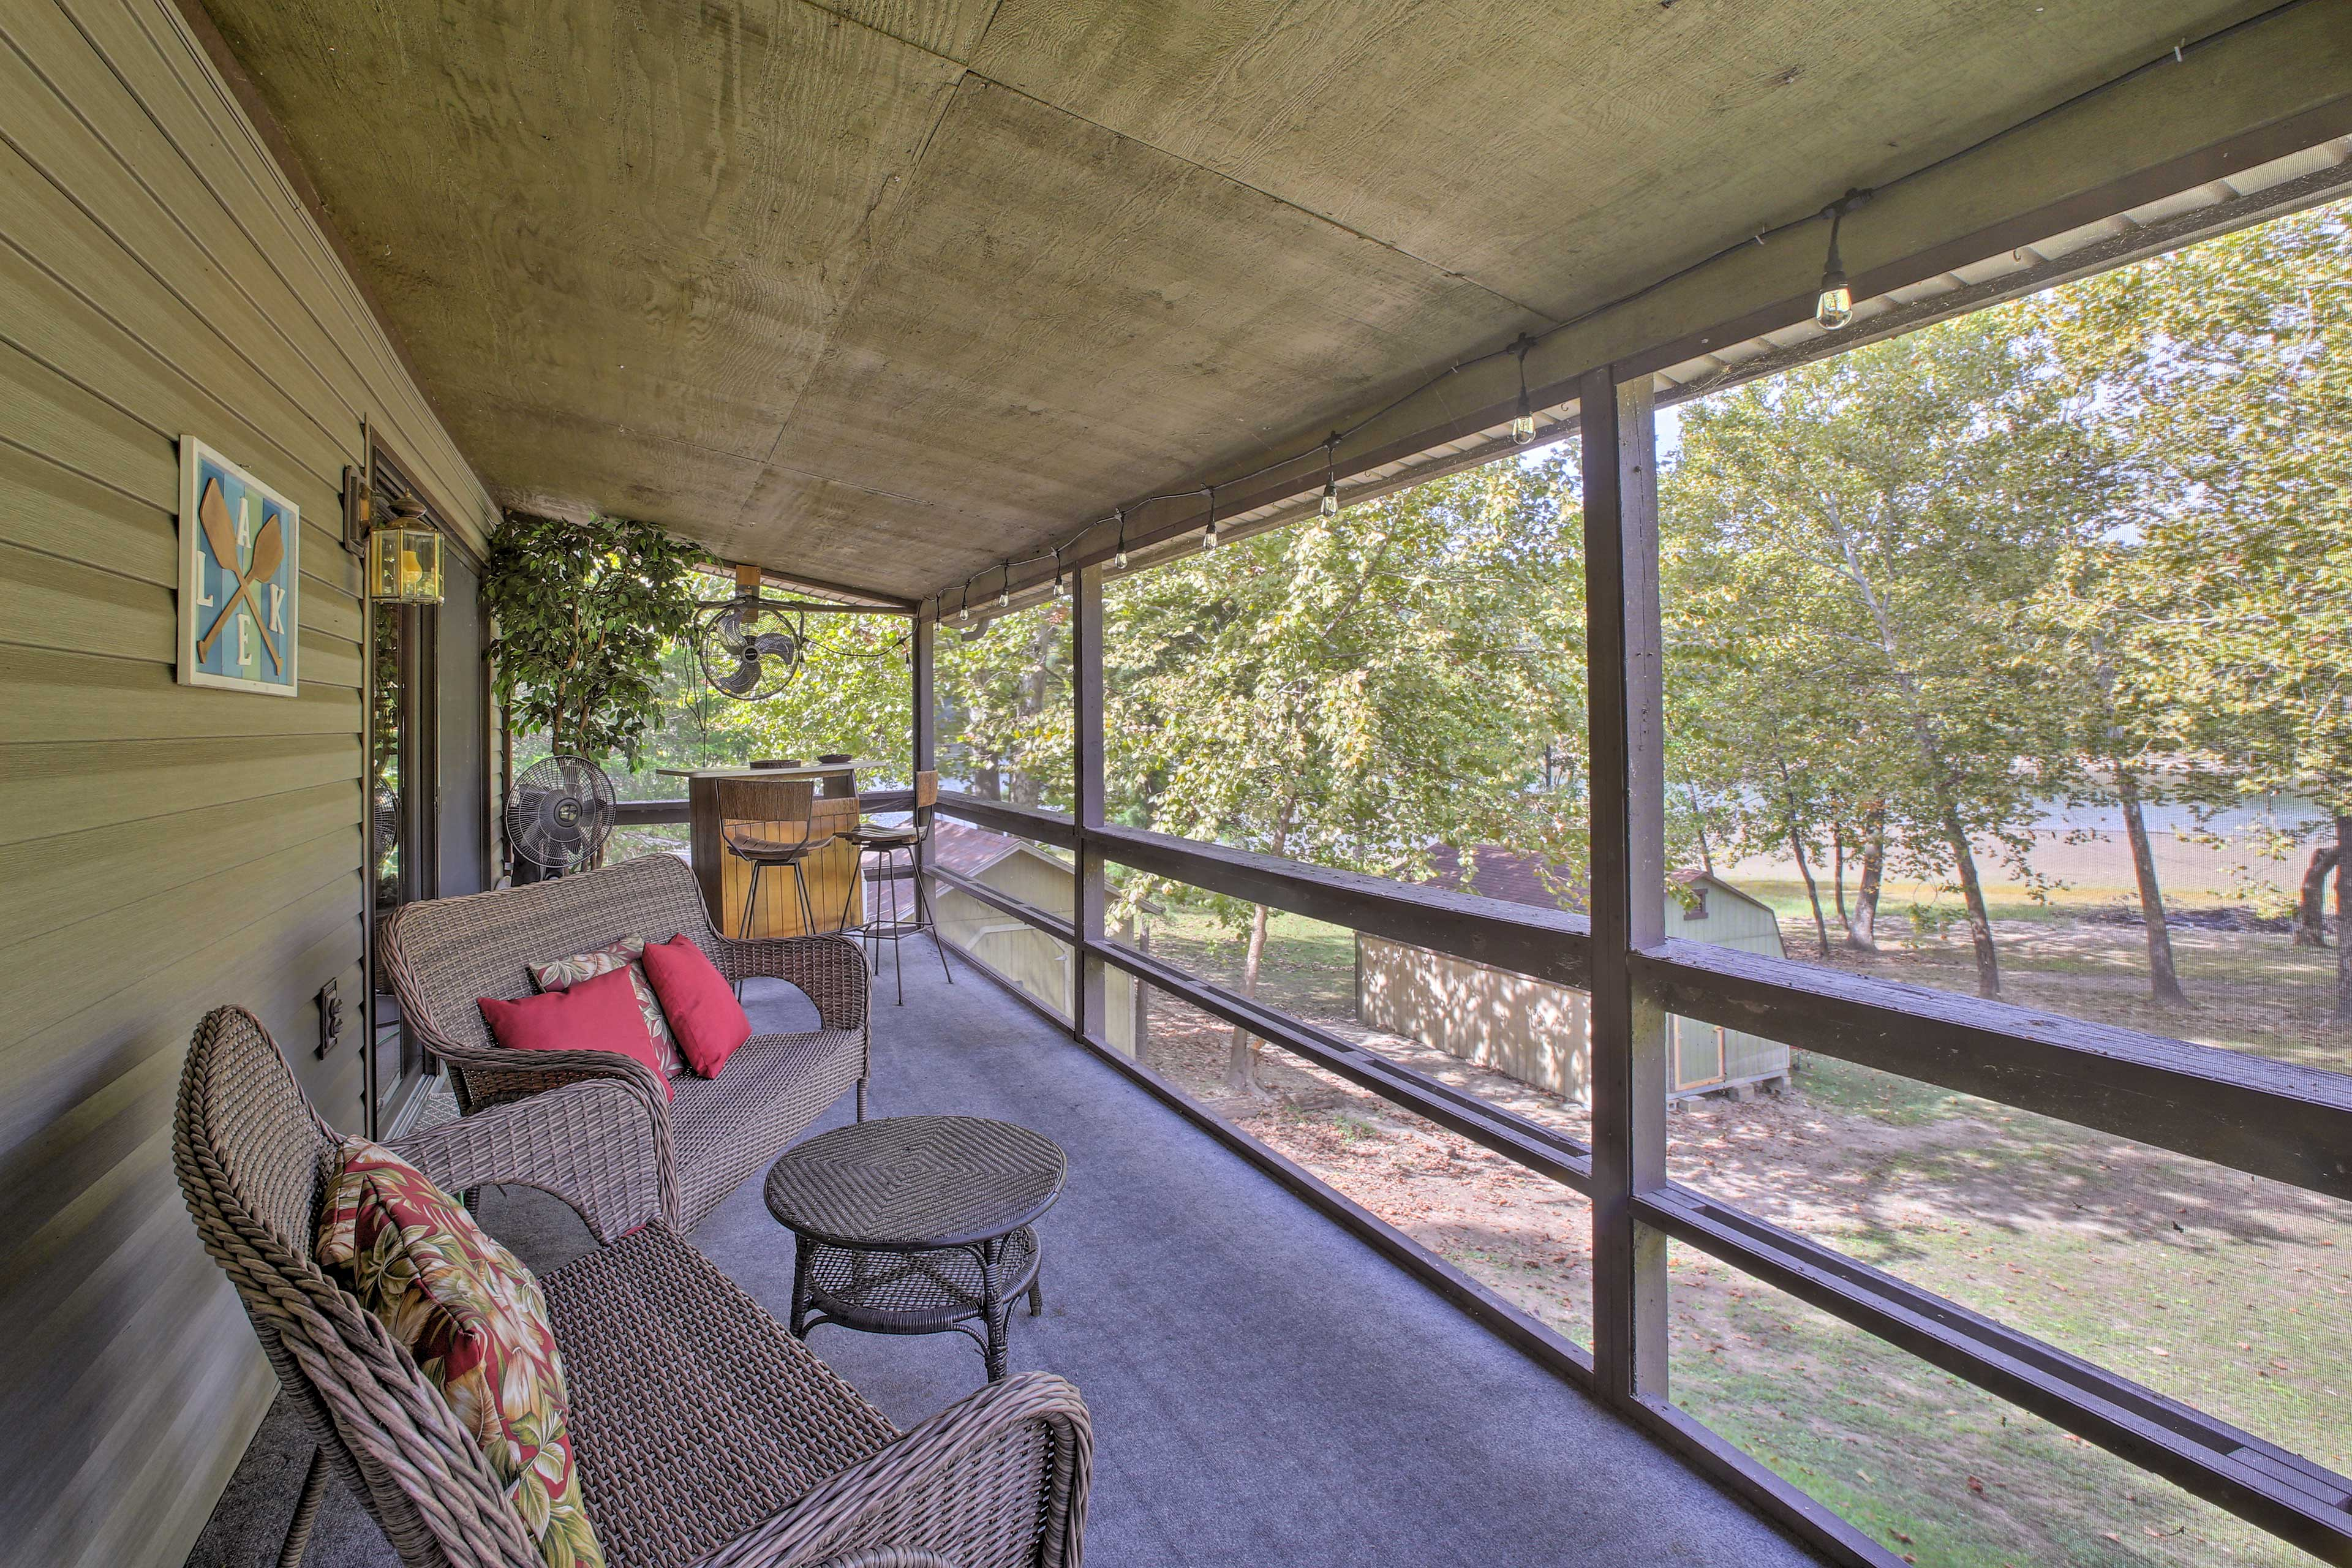 Make the most of your Show-Me State getaway at this 3BR, 2BA vacation rental.